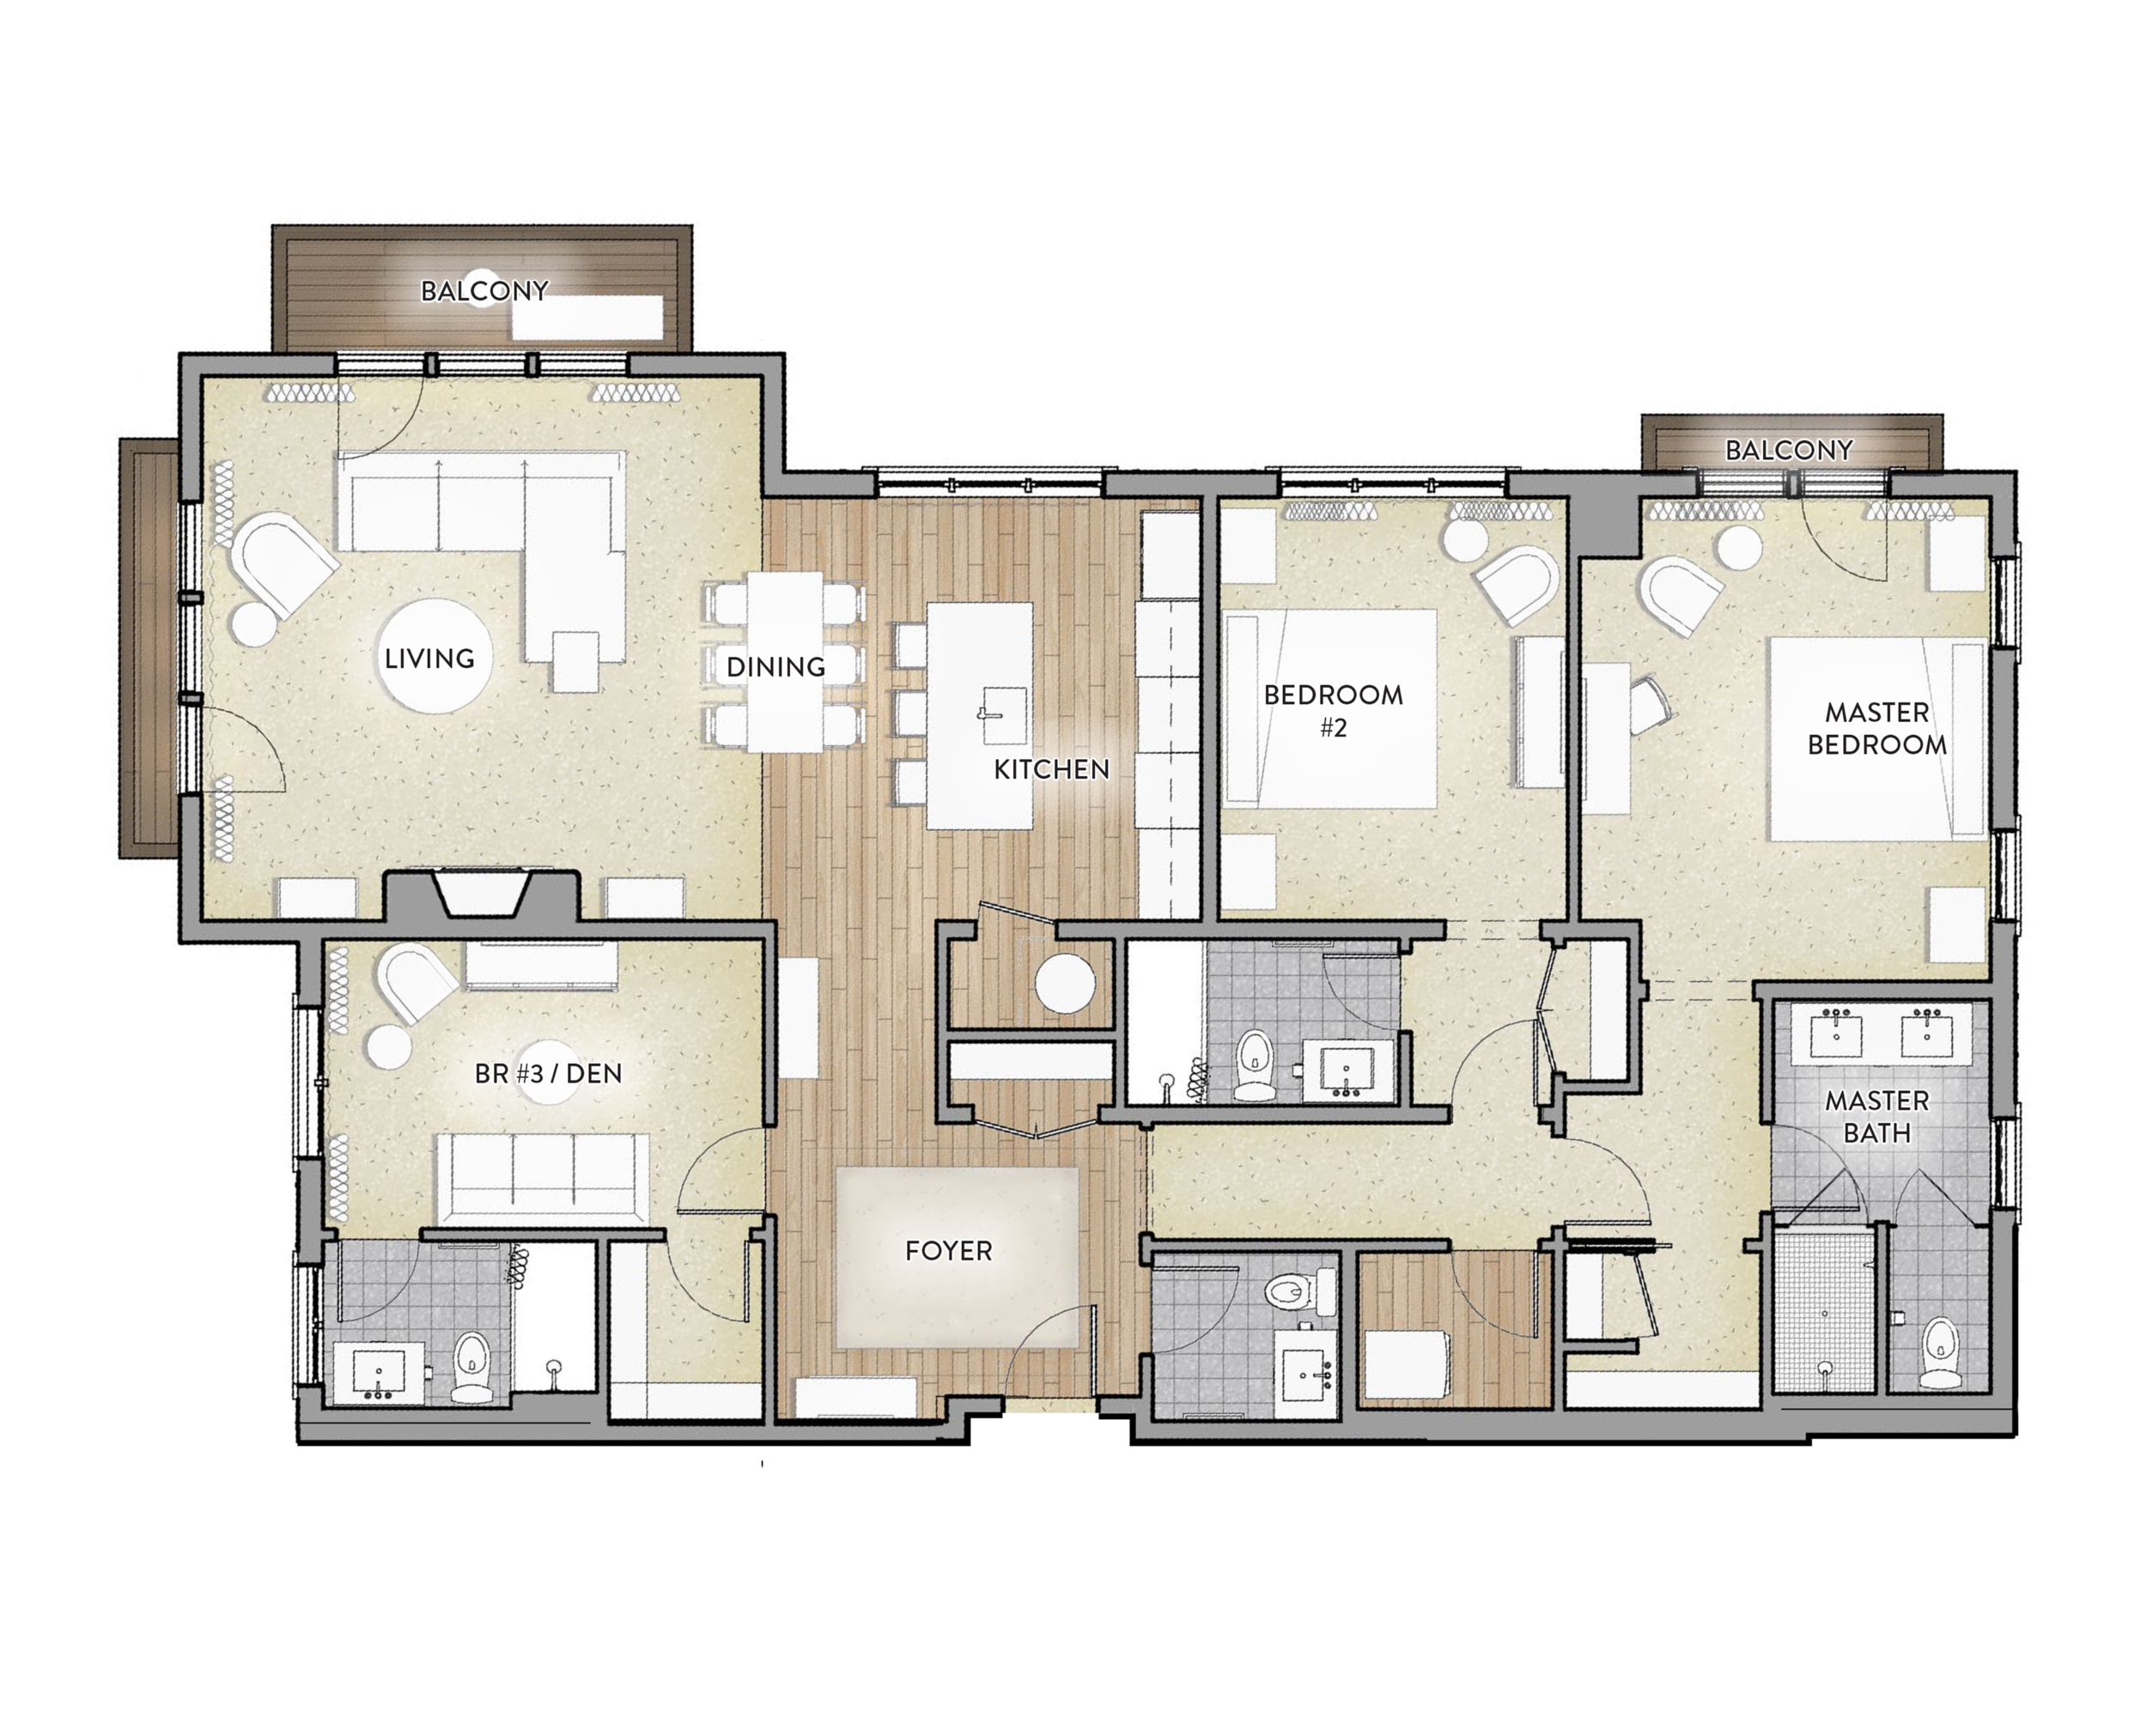 Type A - 3 Bed / 3.5 BathArea: 1795 SF(Paint to Paint)Residences:234, 334,4341 Balcony-